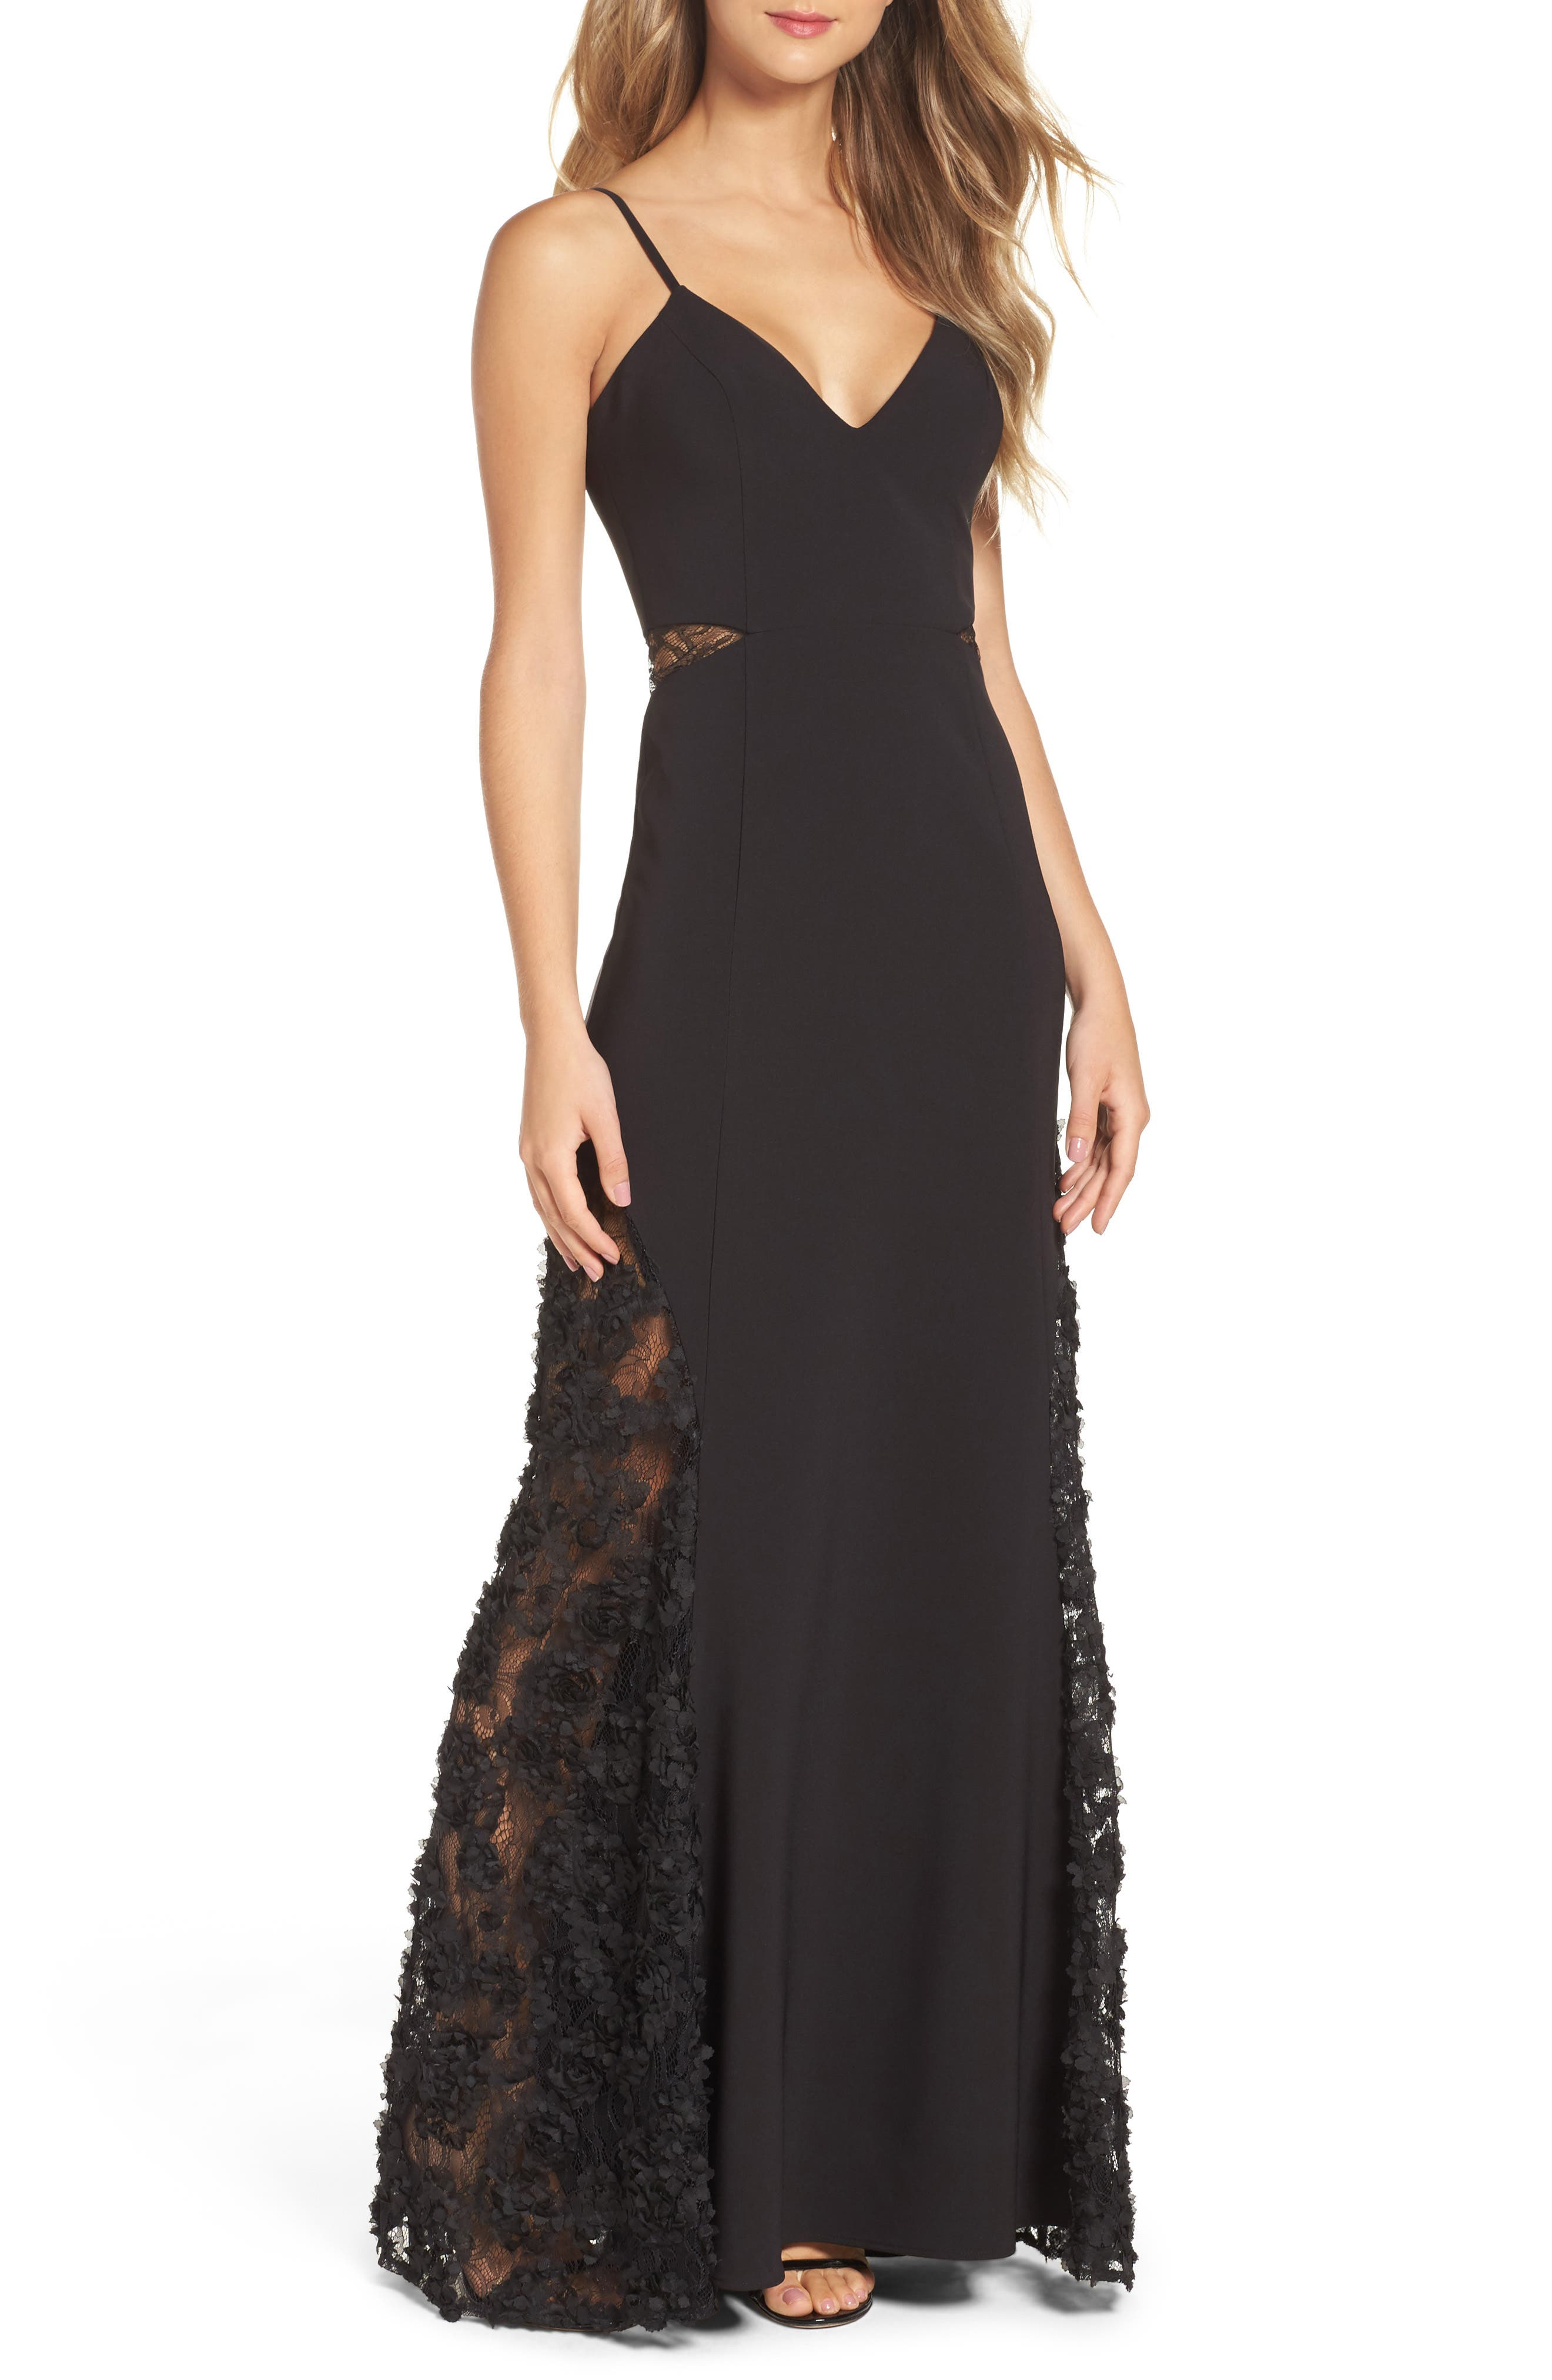 MARIA BIANCA NERO Shannon Lace Inset Gown in Black